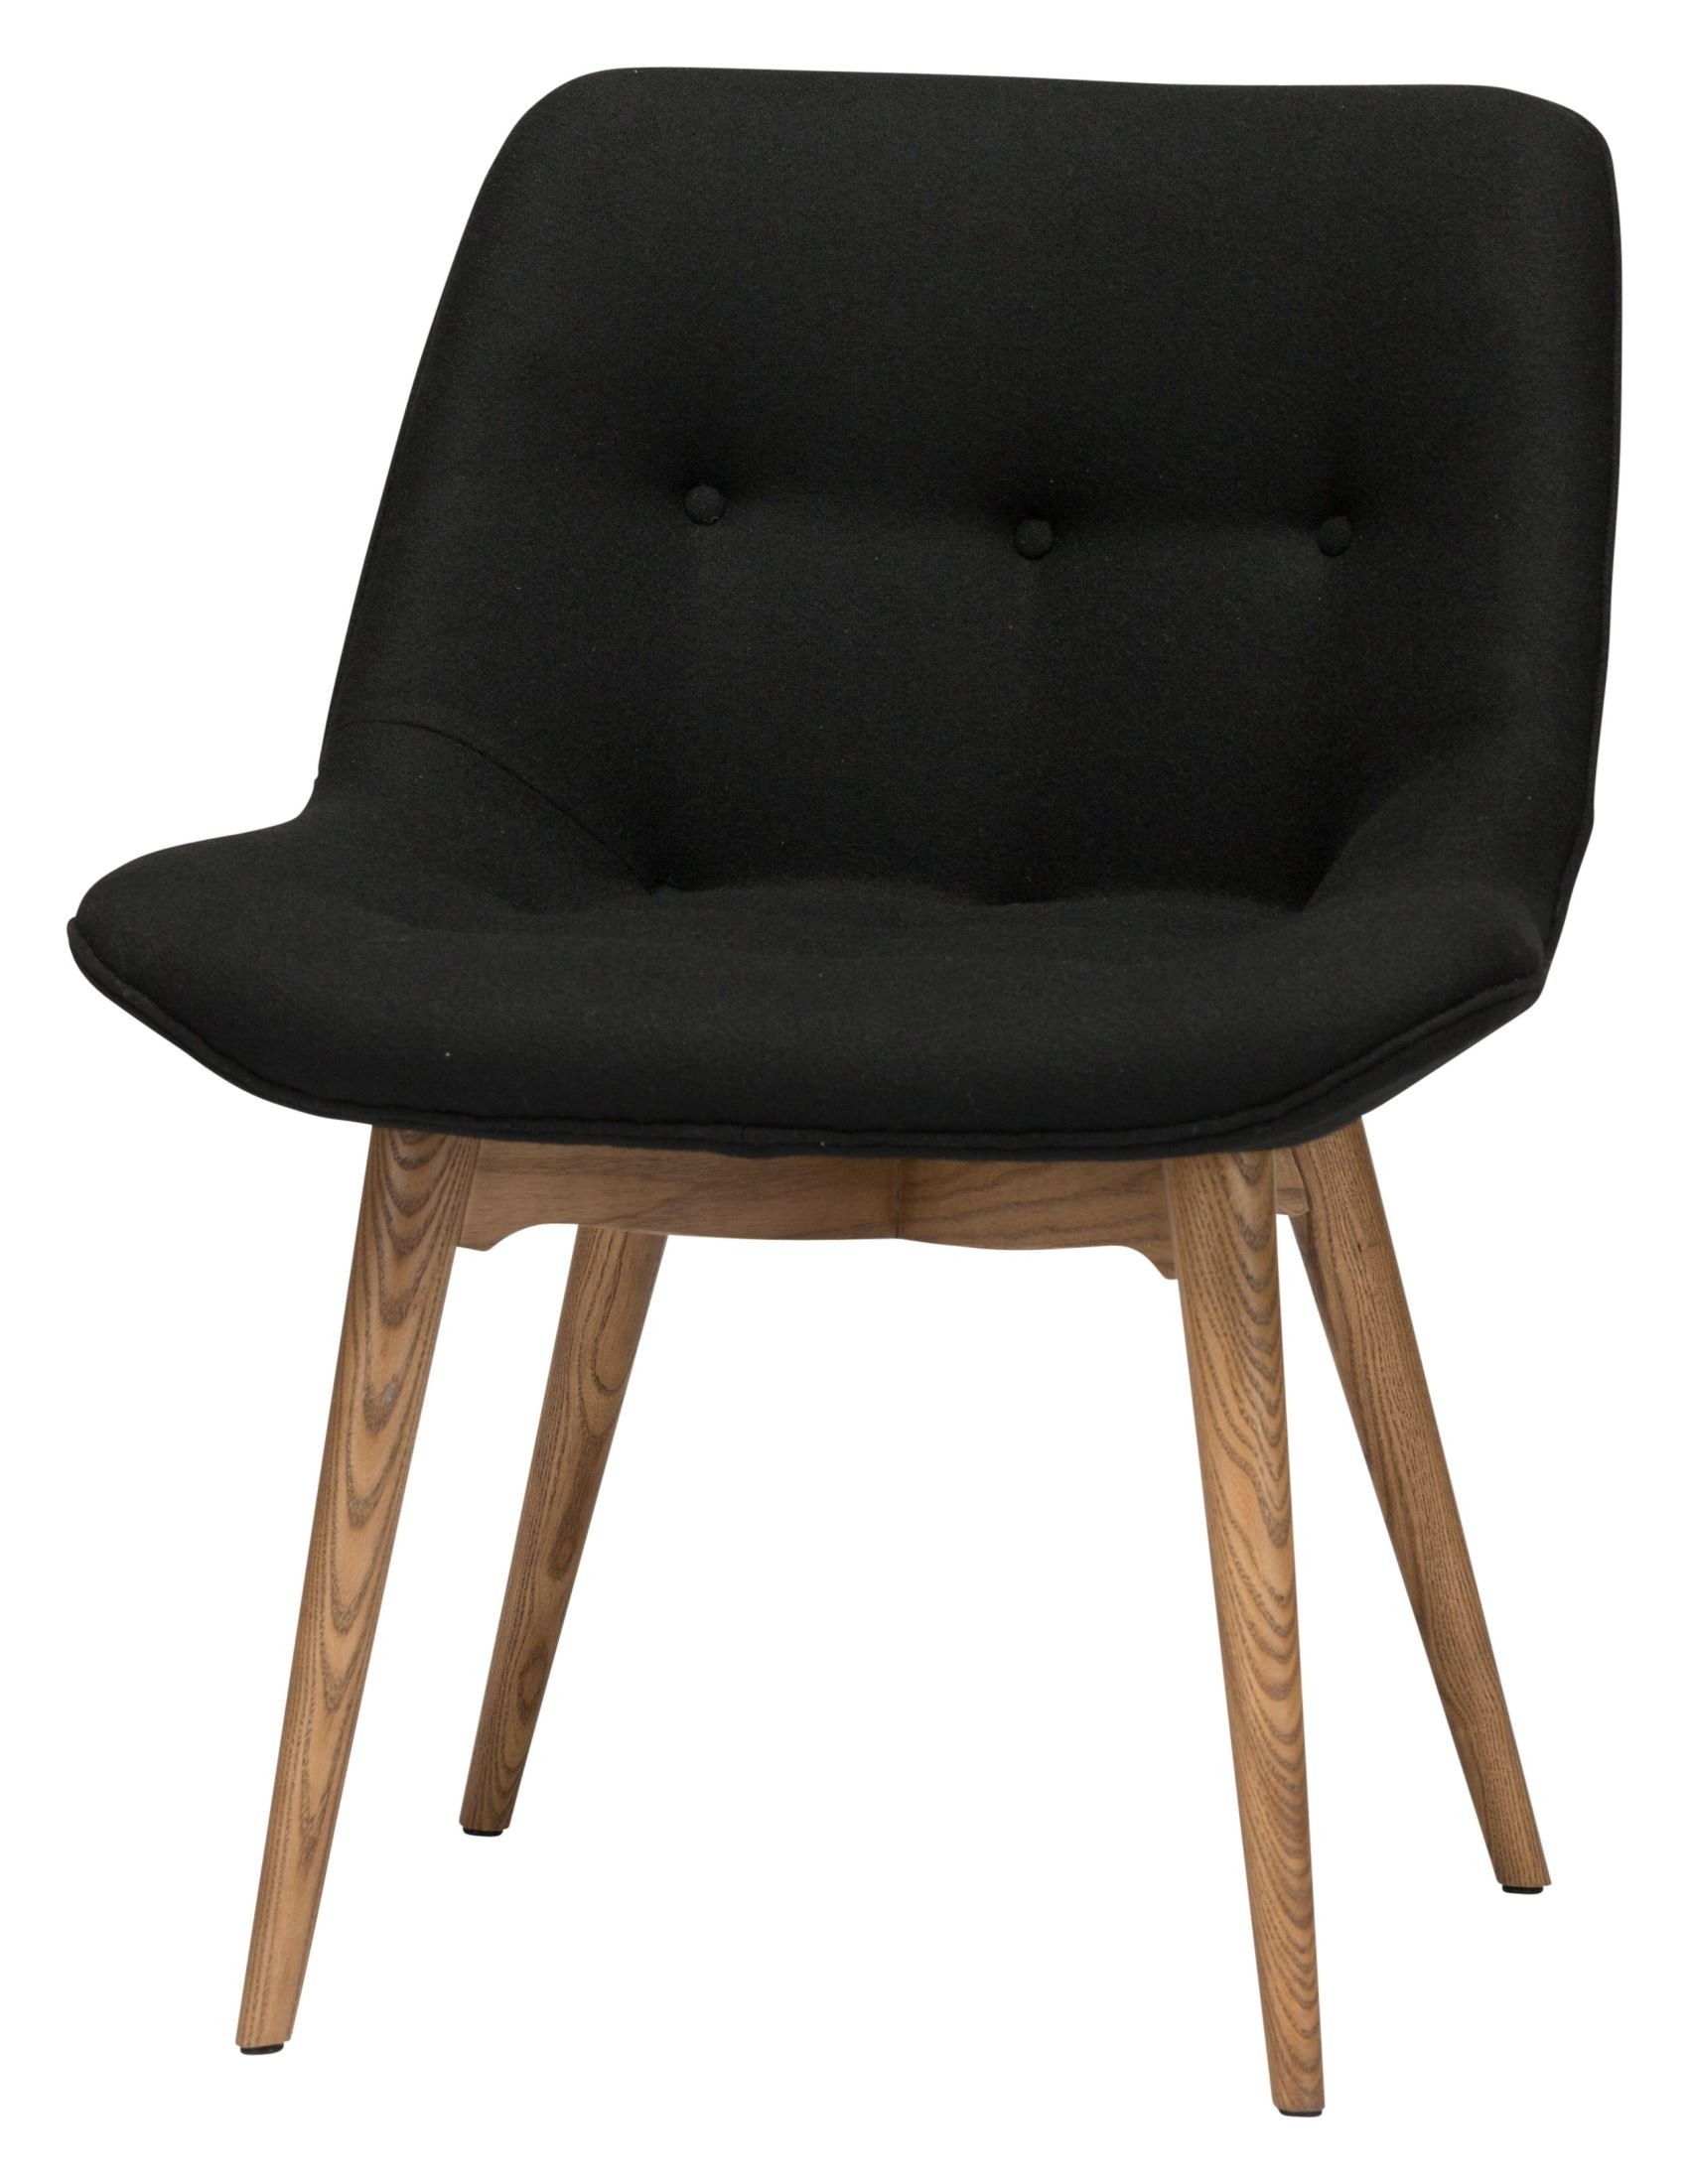 Brie black fabric dining chair hgem643 nuevo for Black and white fabric dining chairs